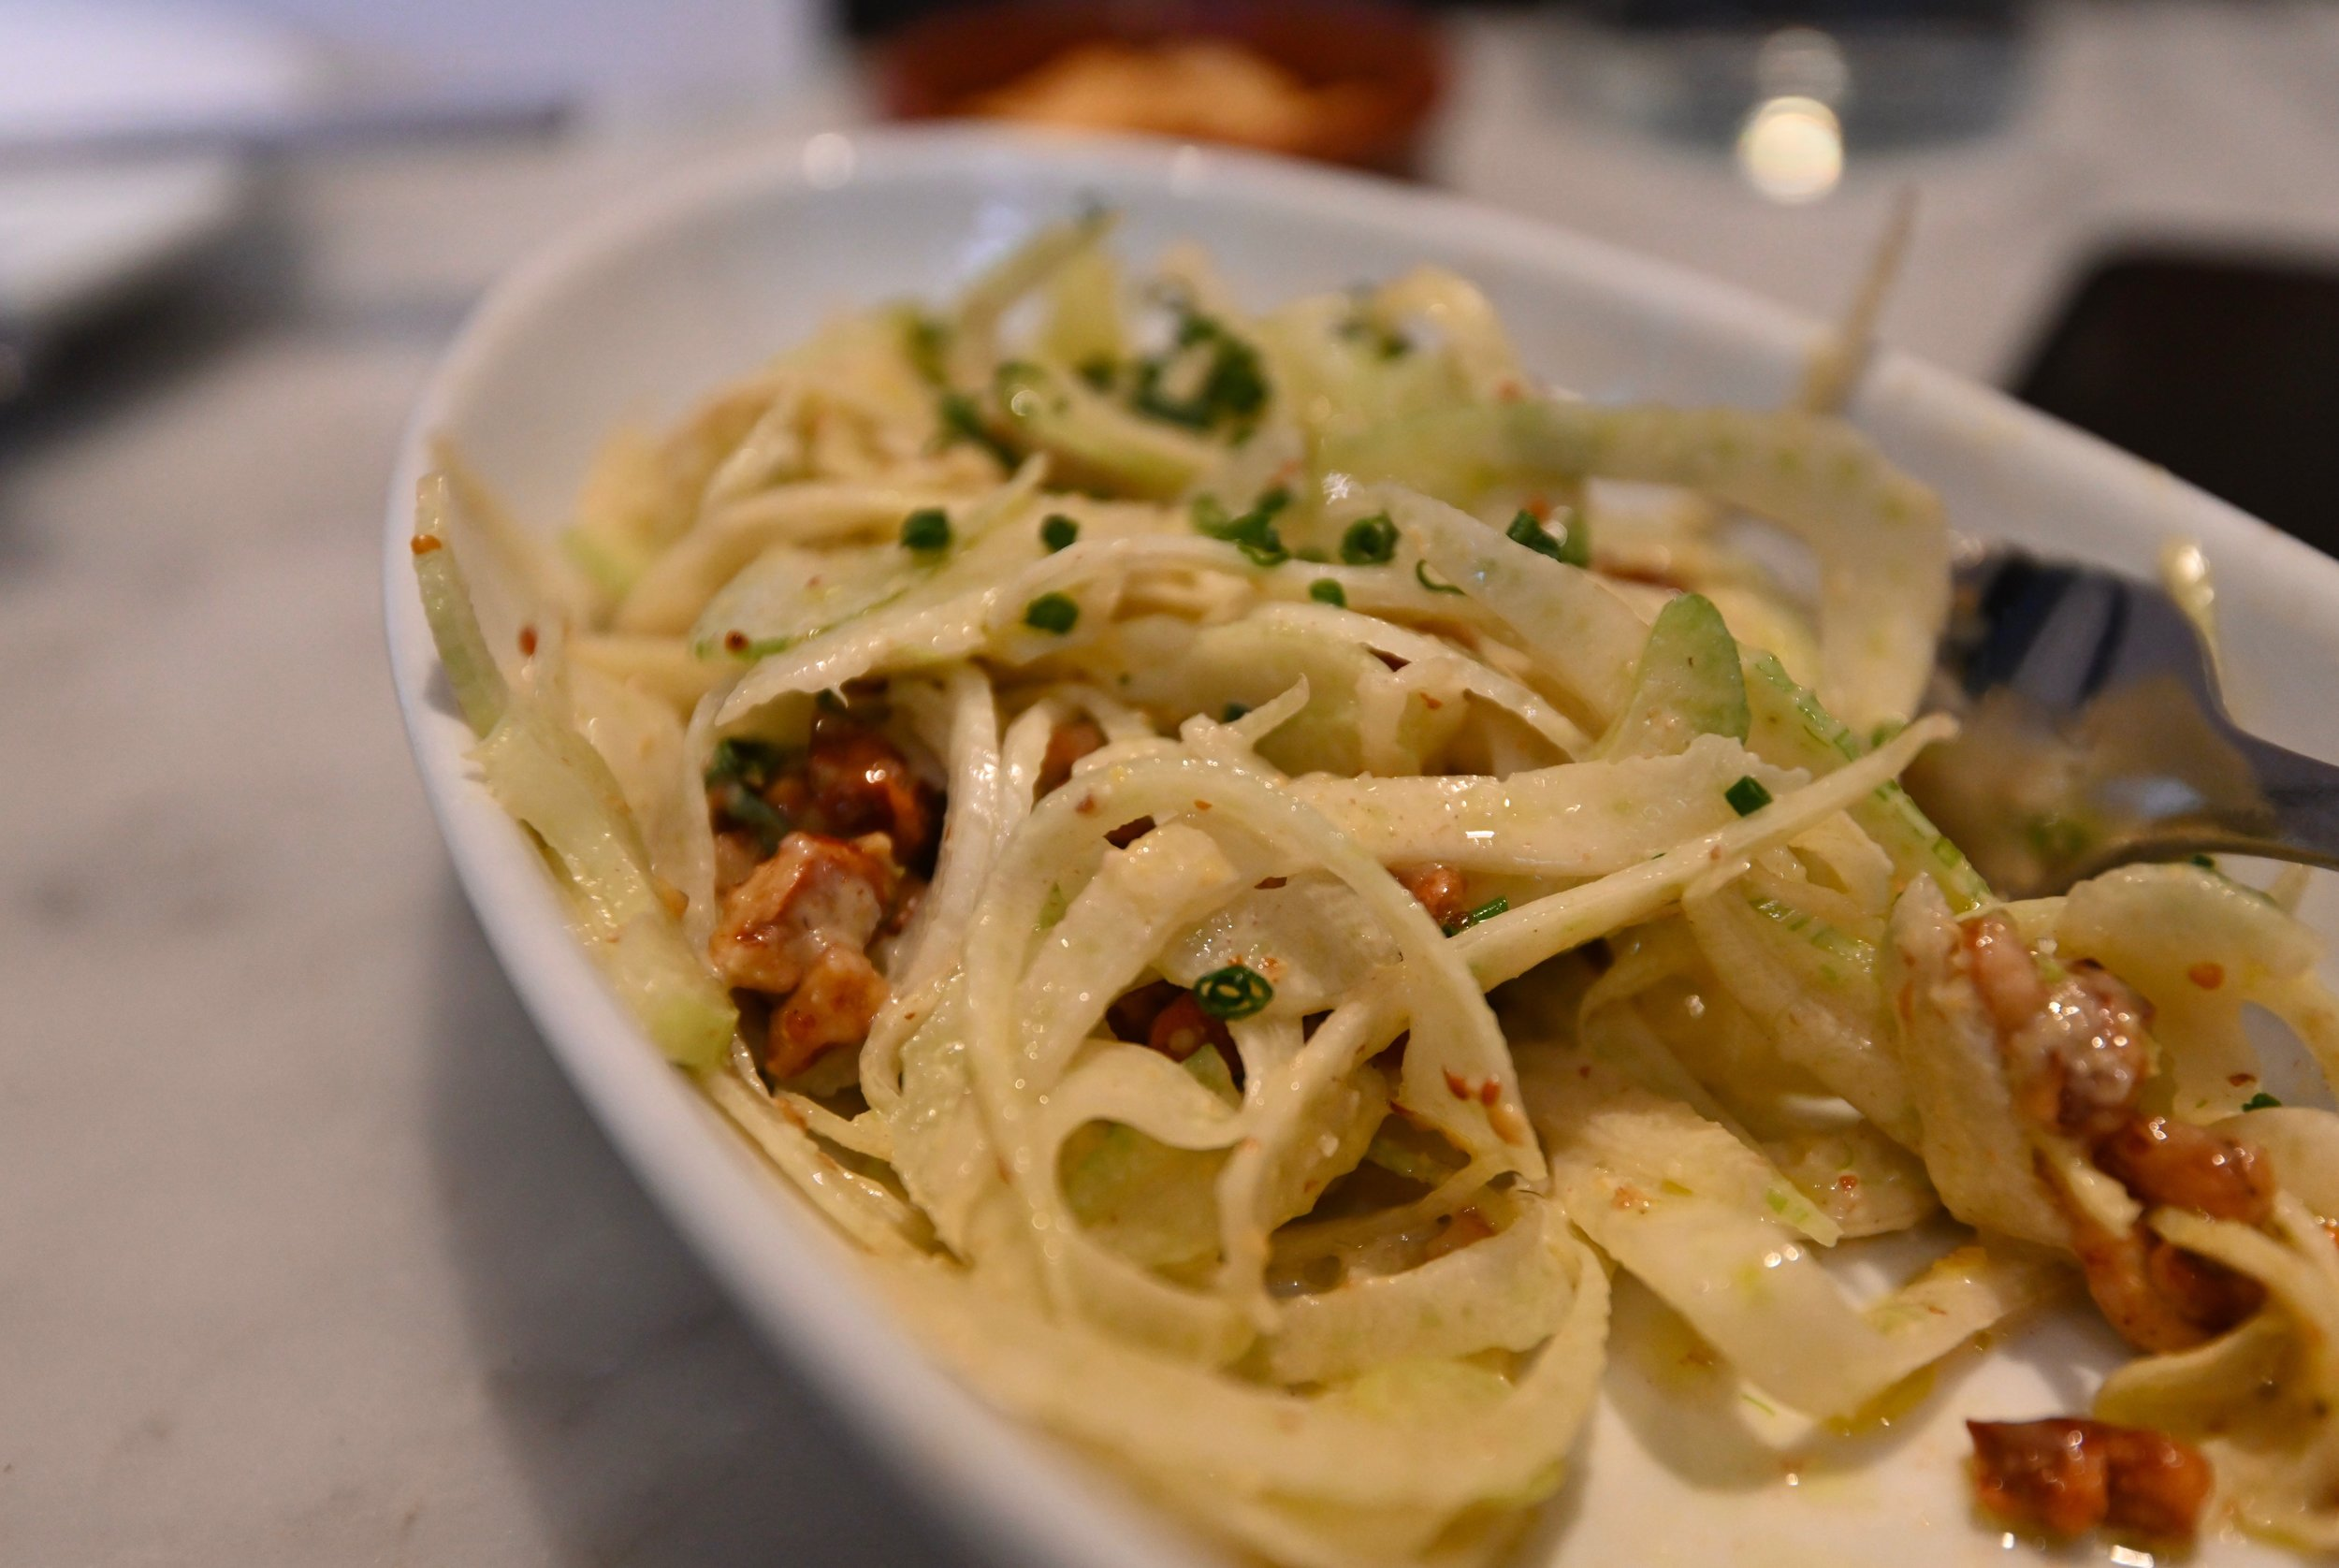 Fennel salad, dressed with a grilled lemon vinaigrette, tarragon and candied pecans.